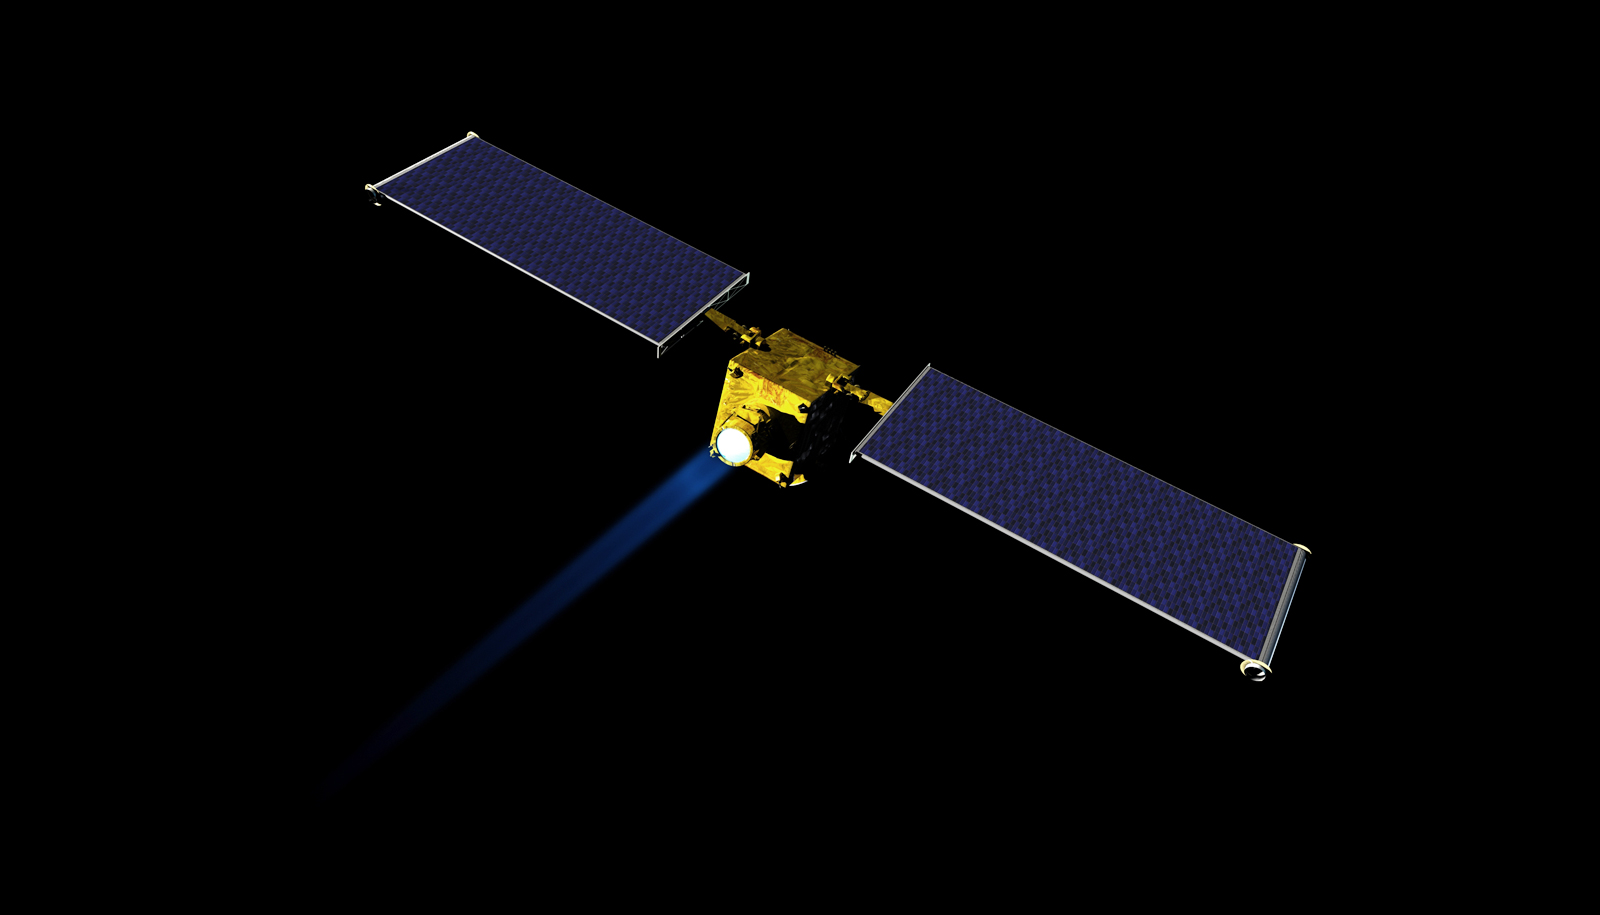 NASA's double asteroid redirection test spacecraft